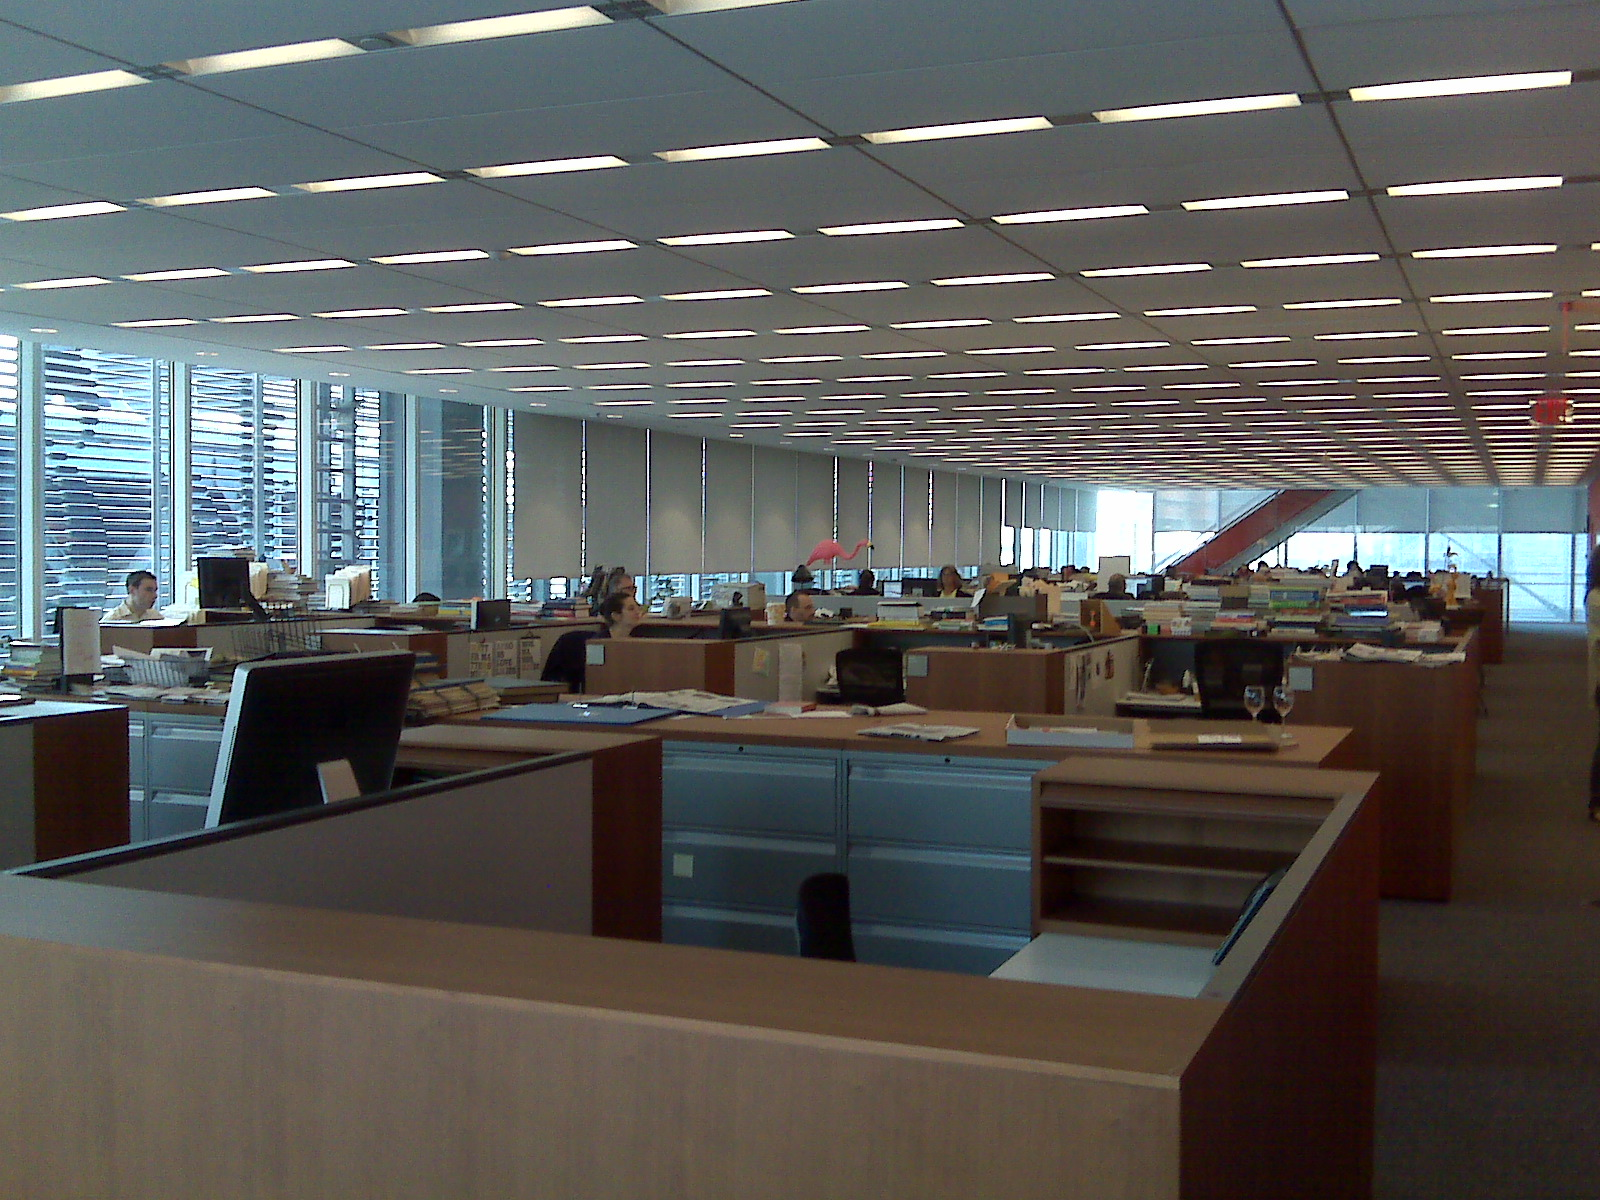 A visit inside The New York Times building